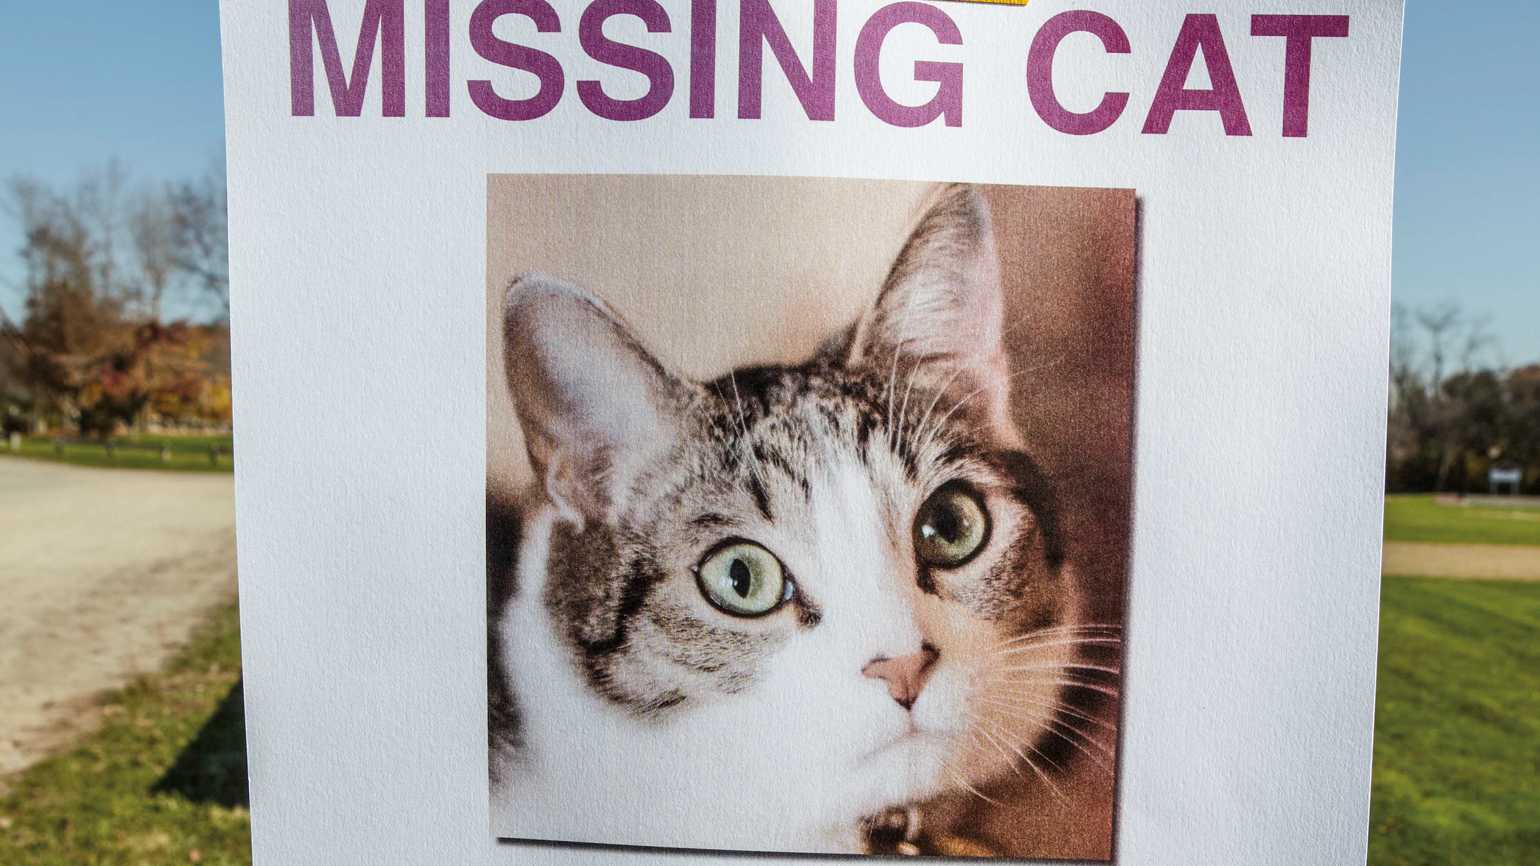 A missing cat poster taped onto a wooden post.